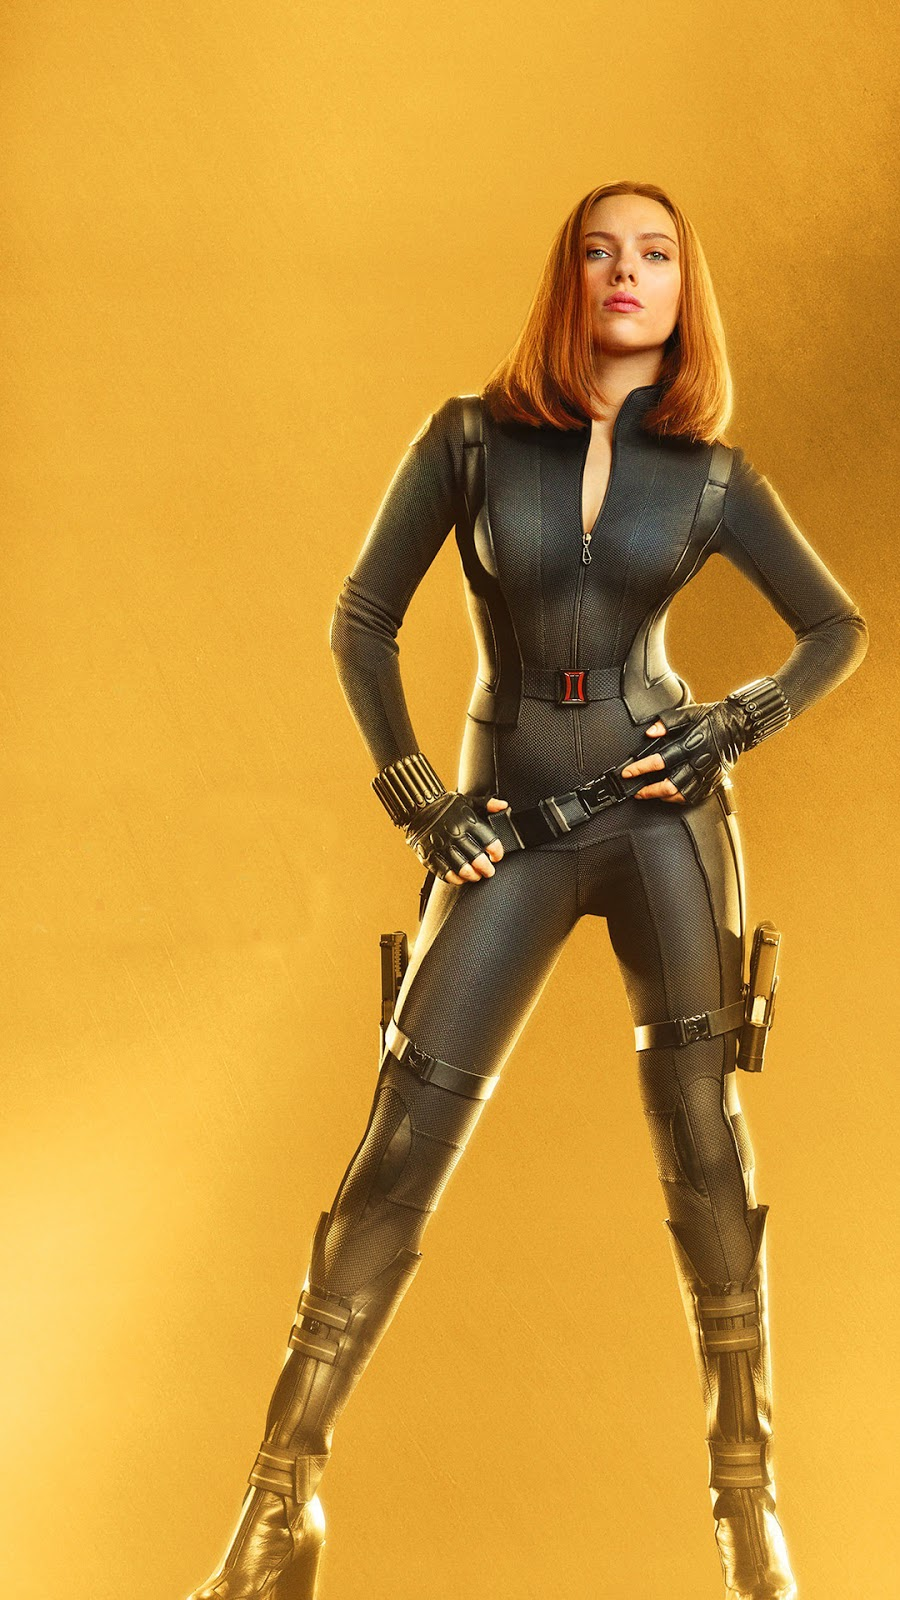 Black Widow Mobile Wallpaper baju ketat dan Cosplay